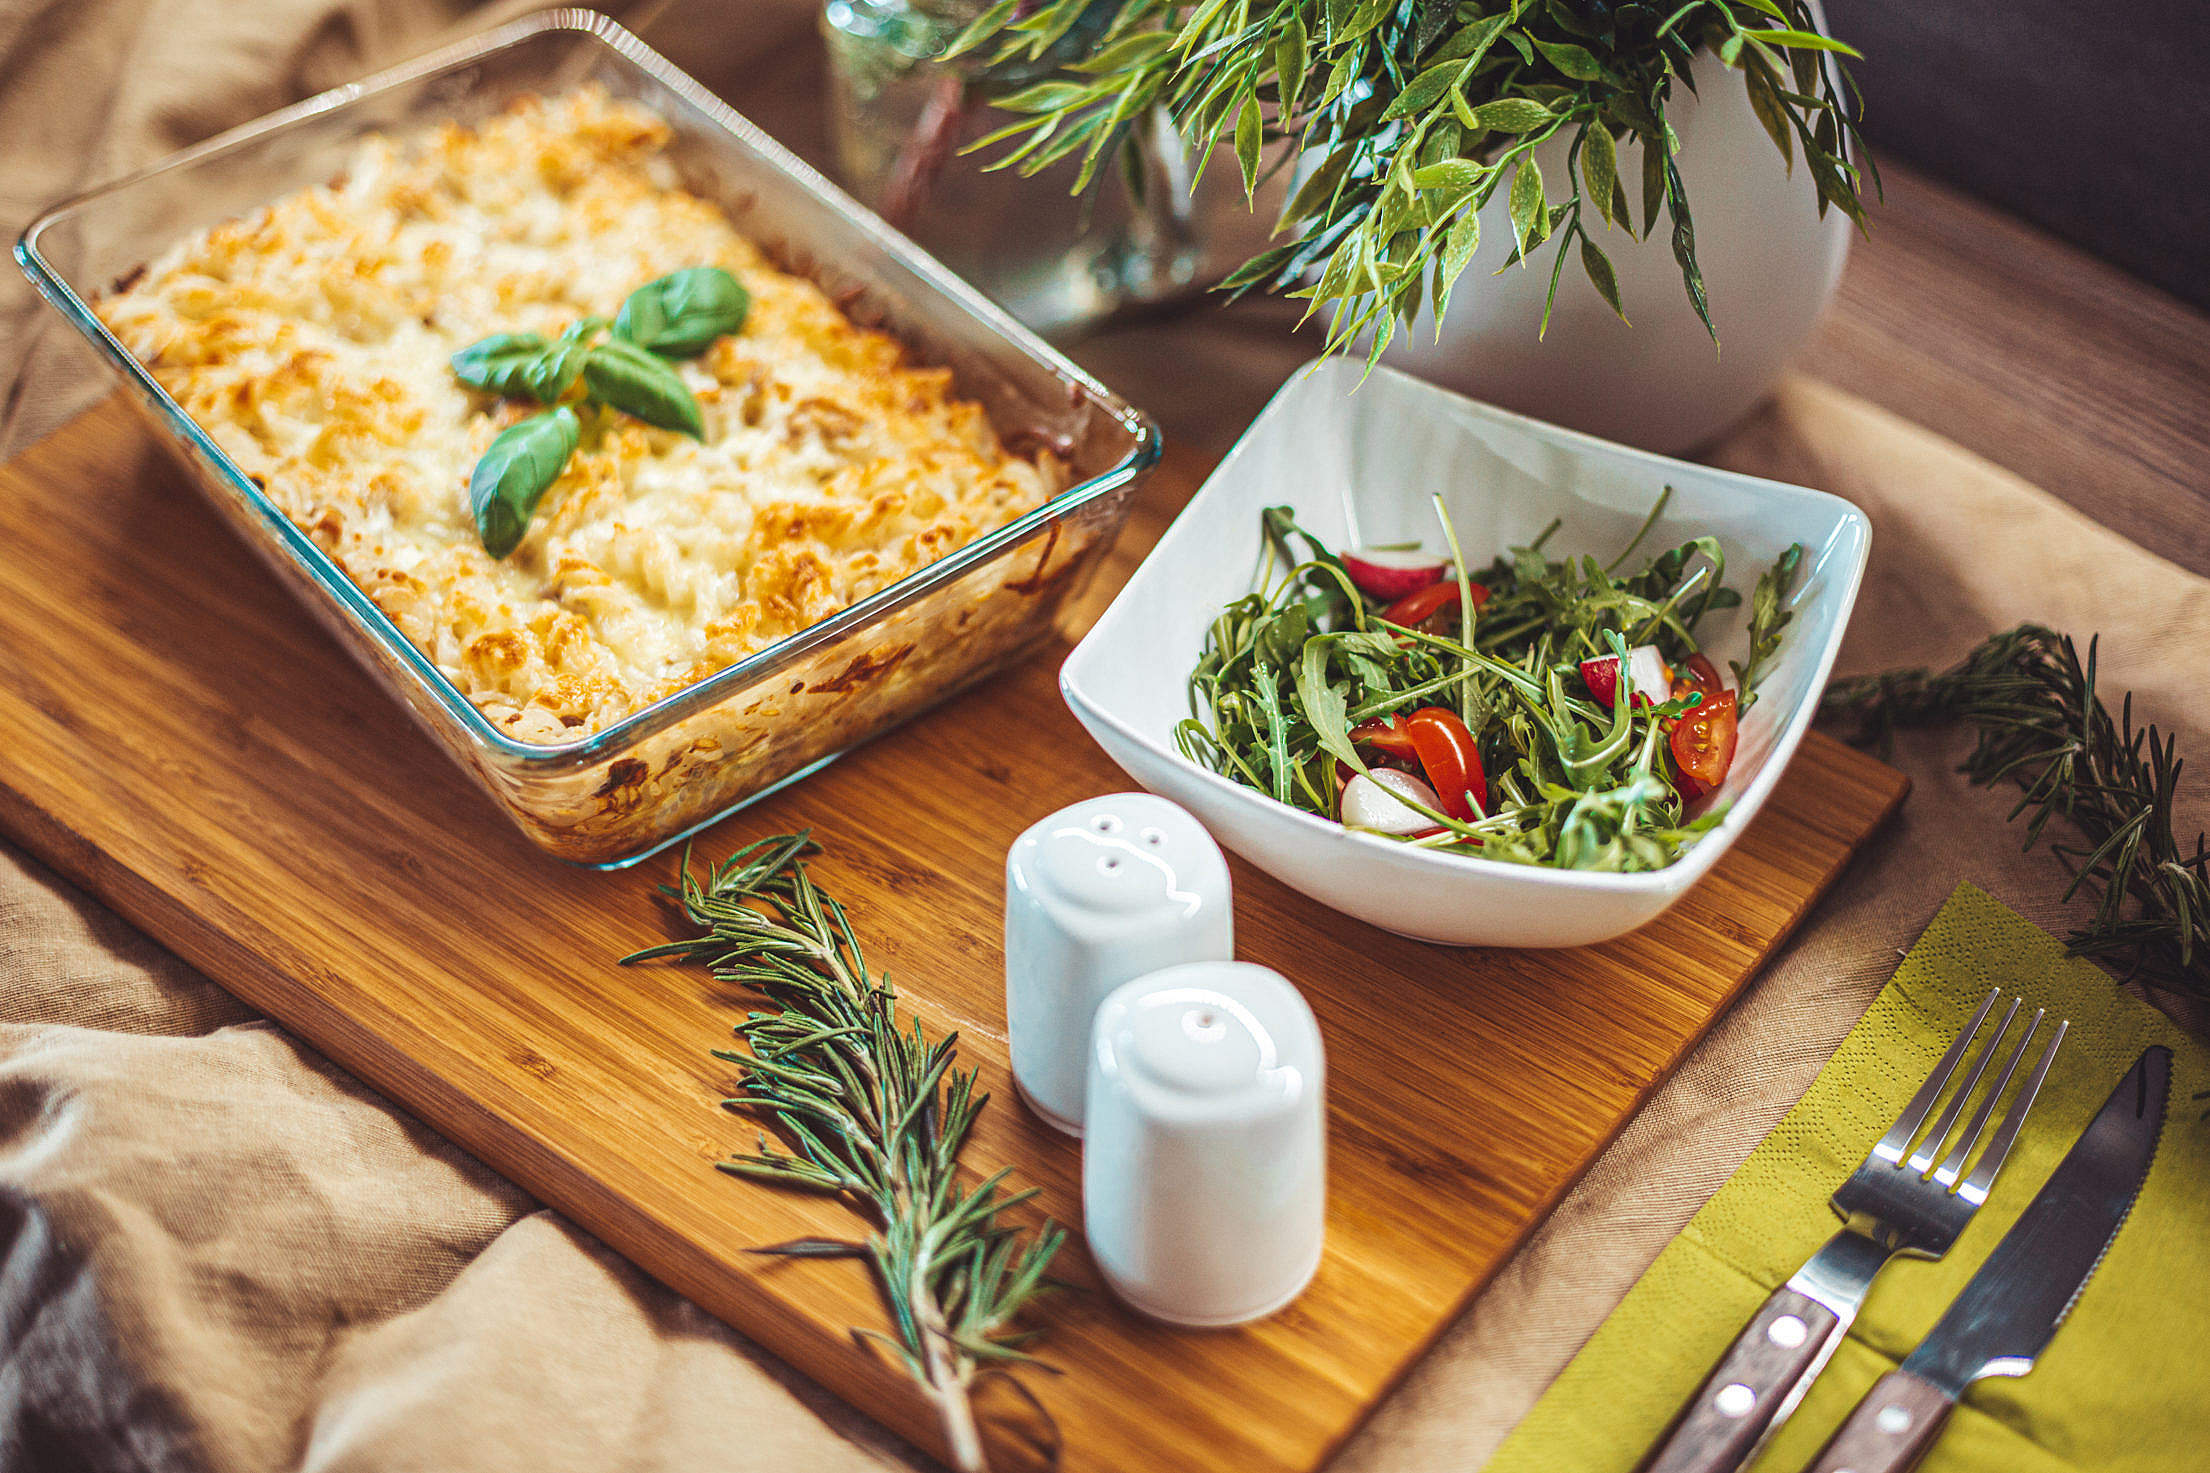 Baked Pasta with Tuna Served on a Wooden Chopping Board Free Stock Photo